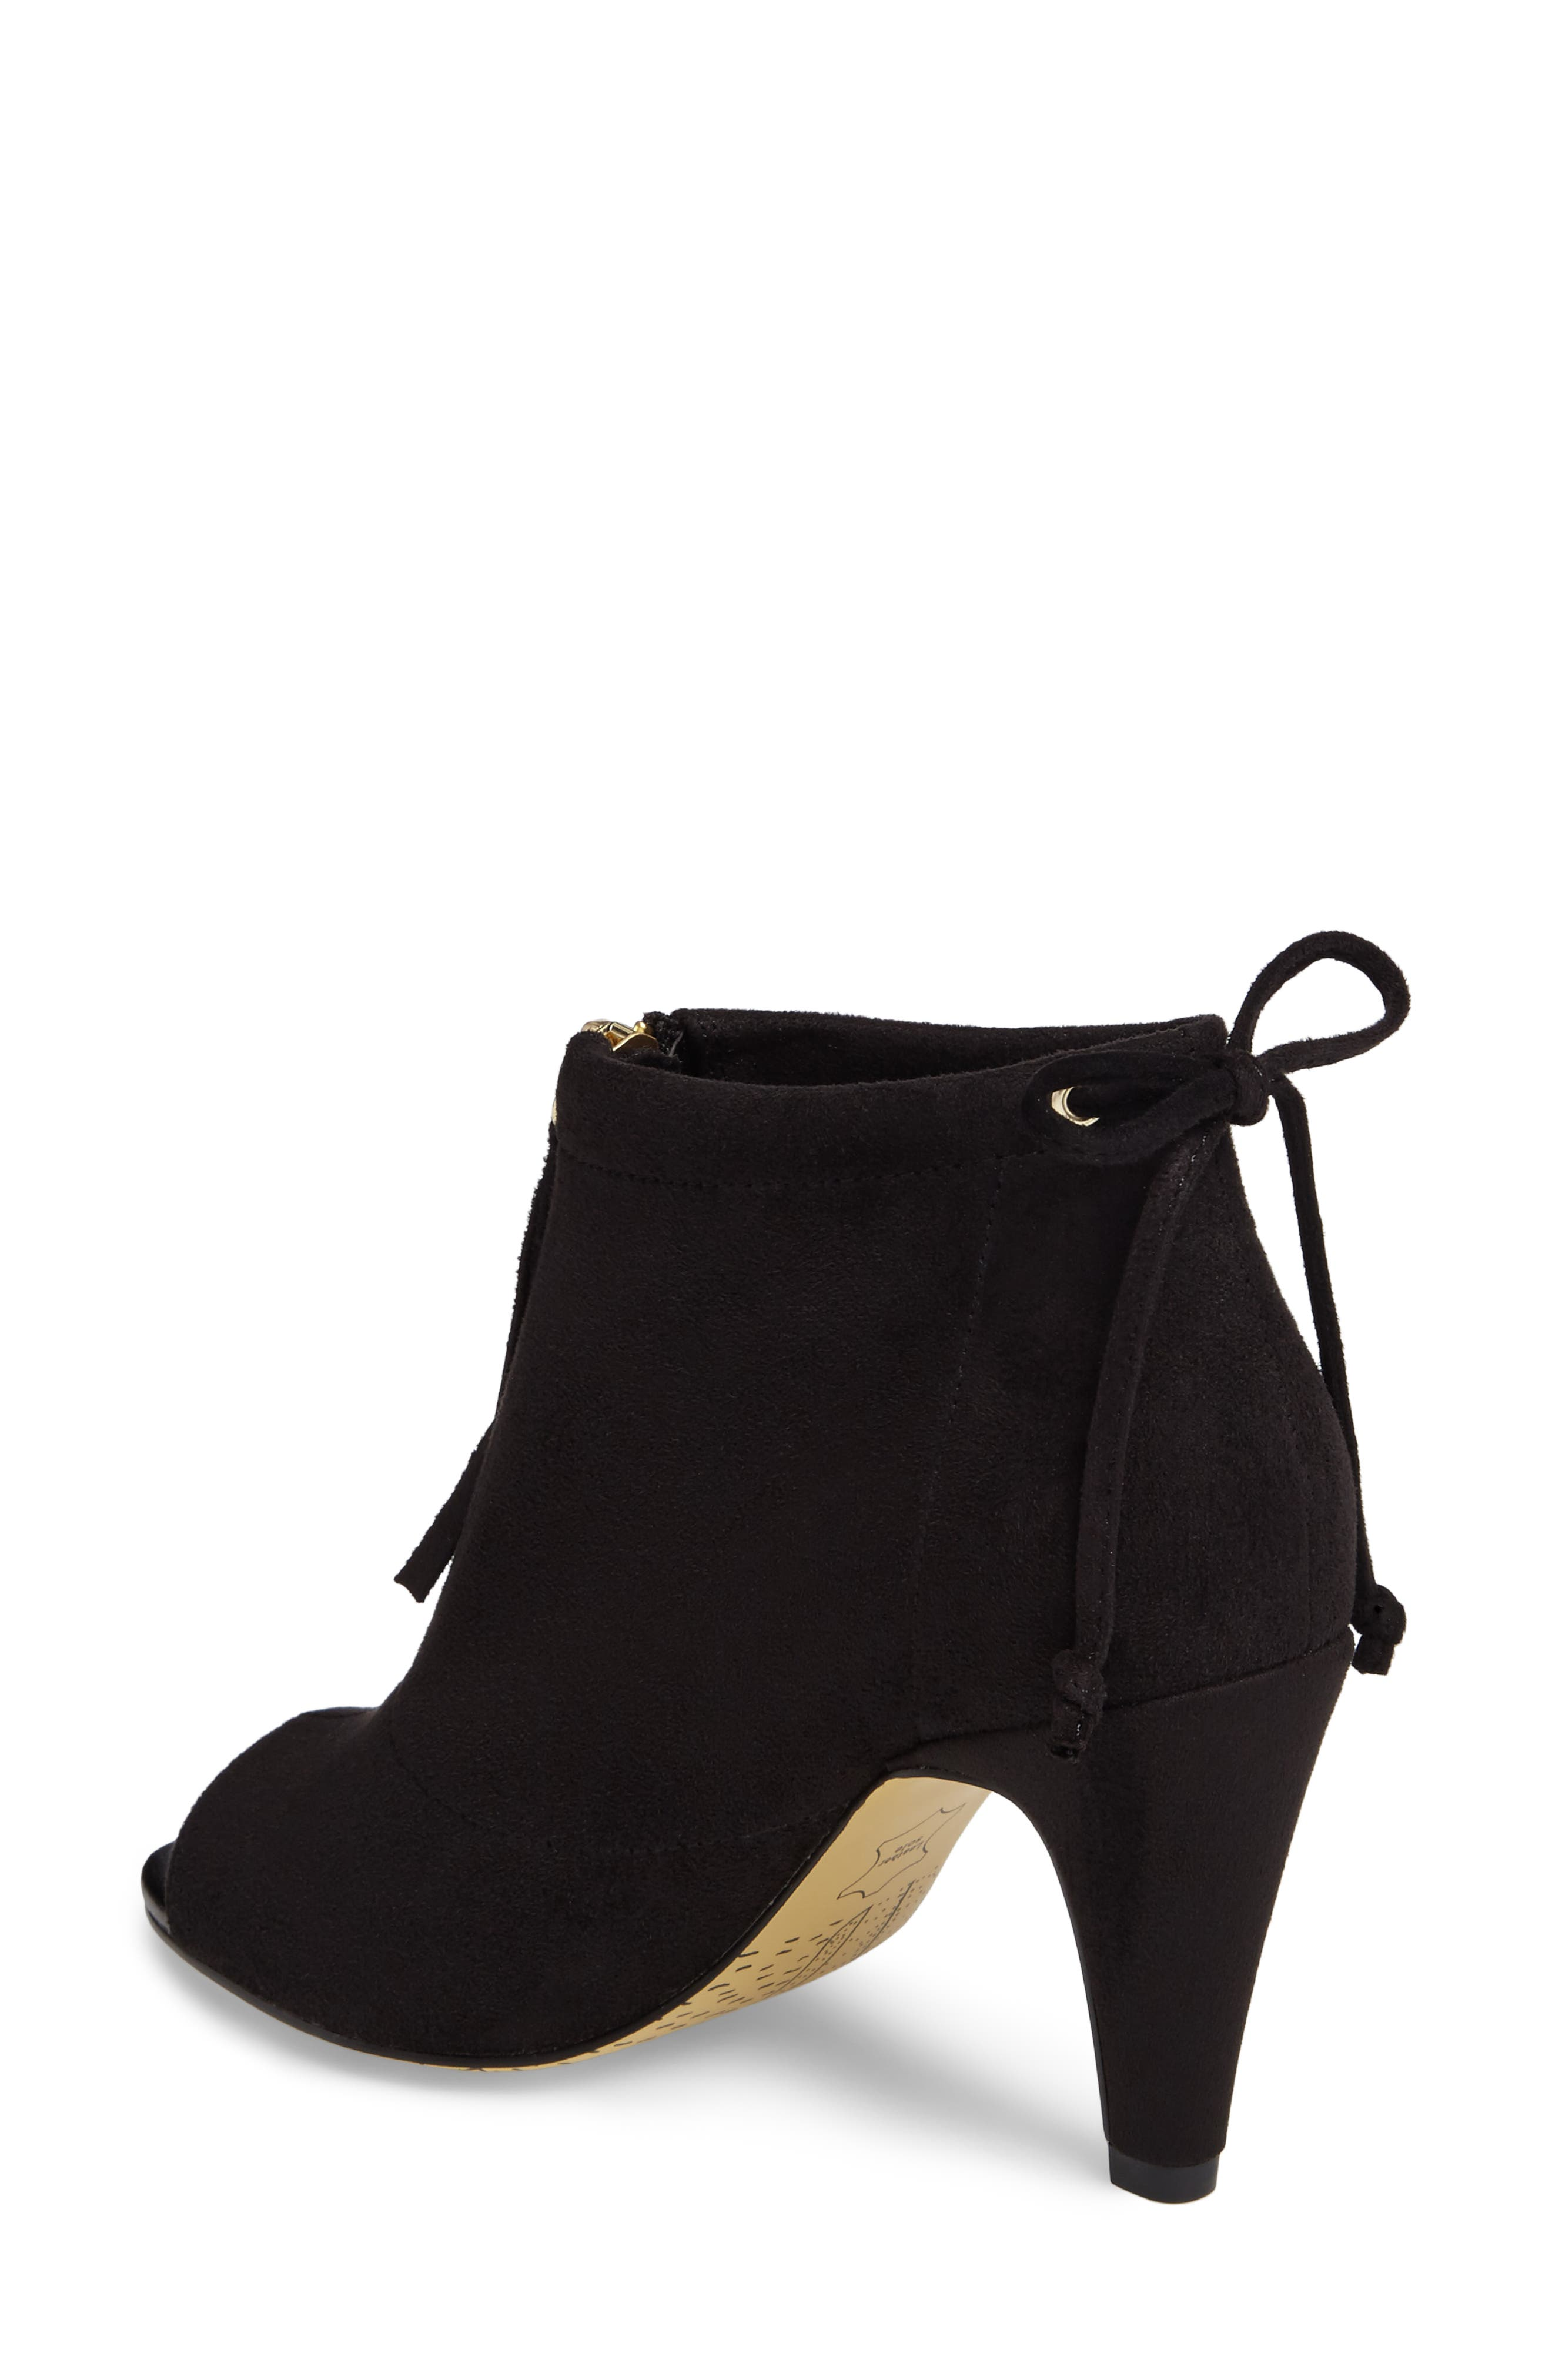 Nicky II Zip Front Bootie,                             Alternate thumbnail 2, color,                             018